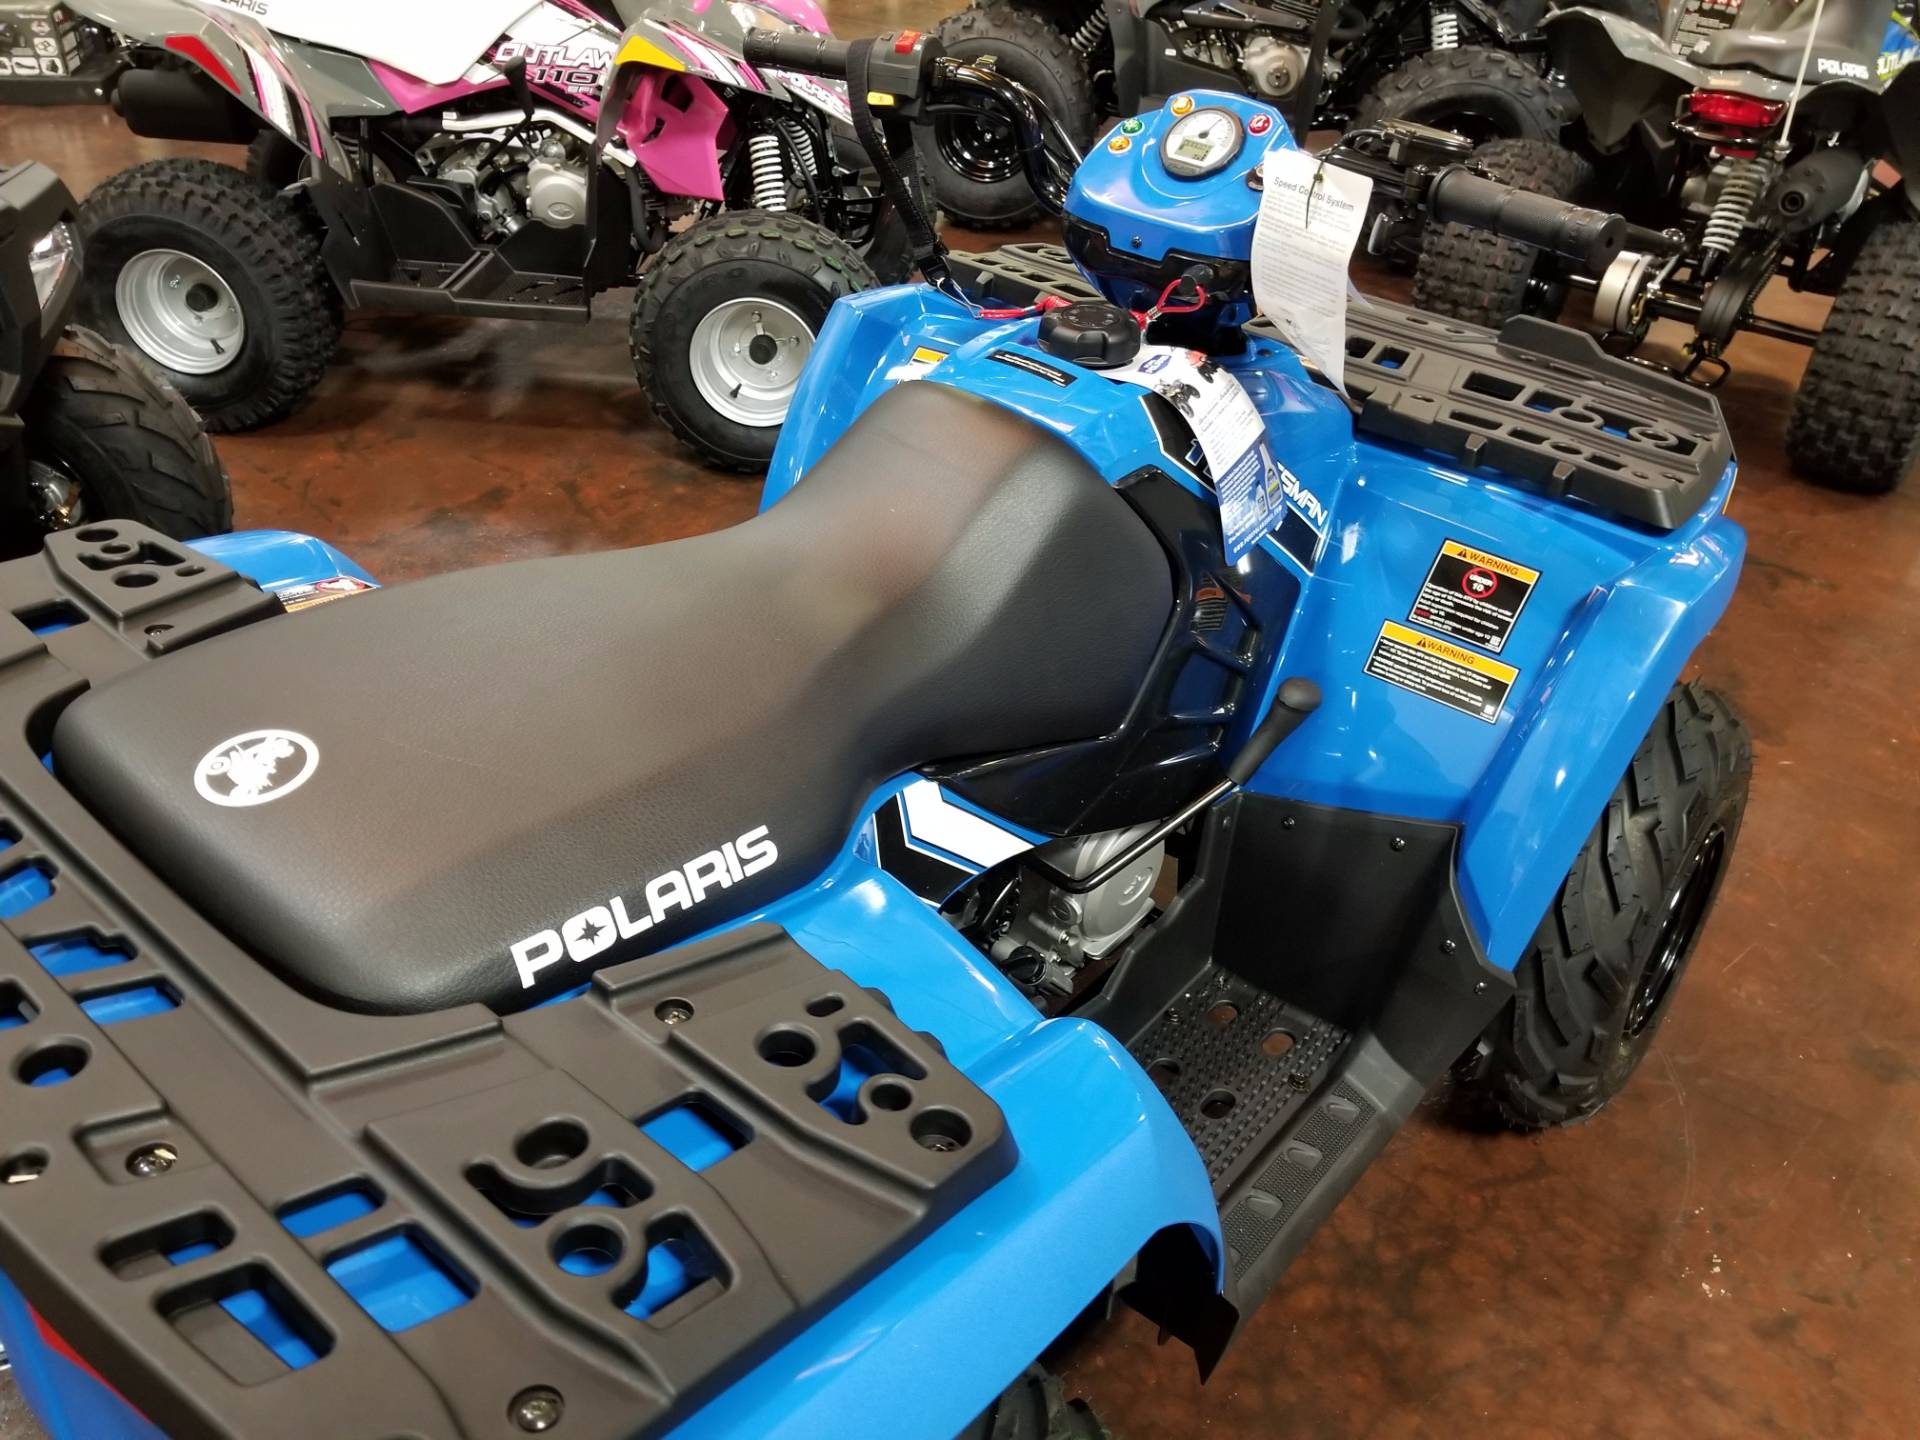 2019 Polaris Sportsman 110 EFI in Statesville, North Carolina